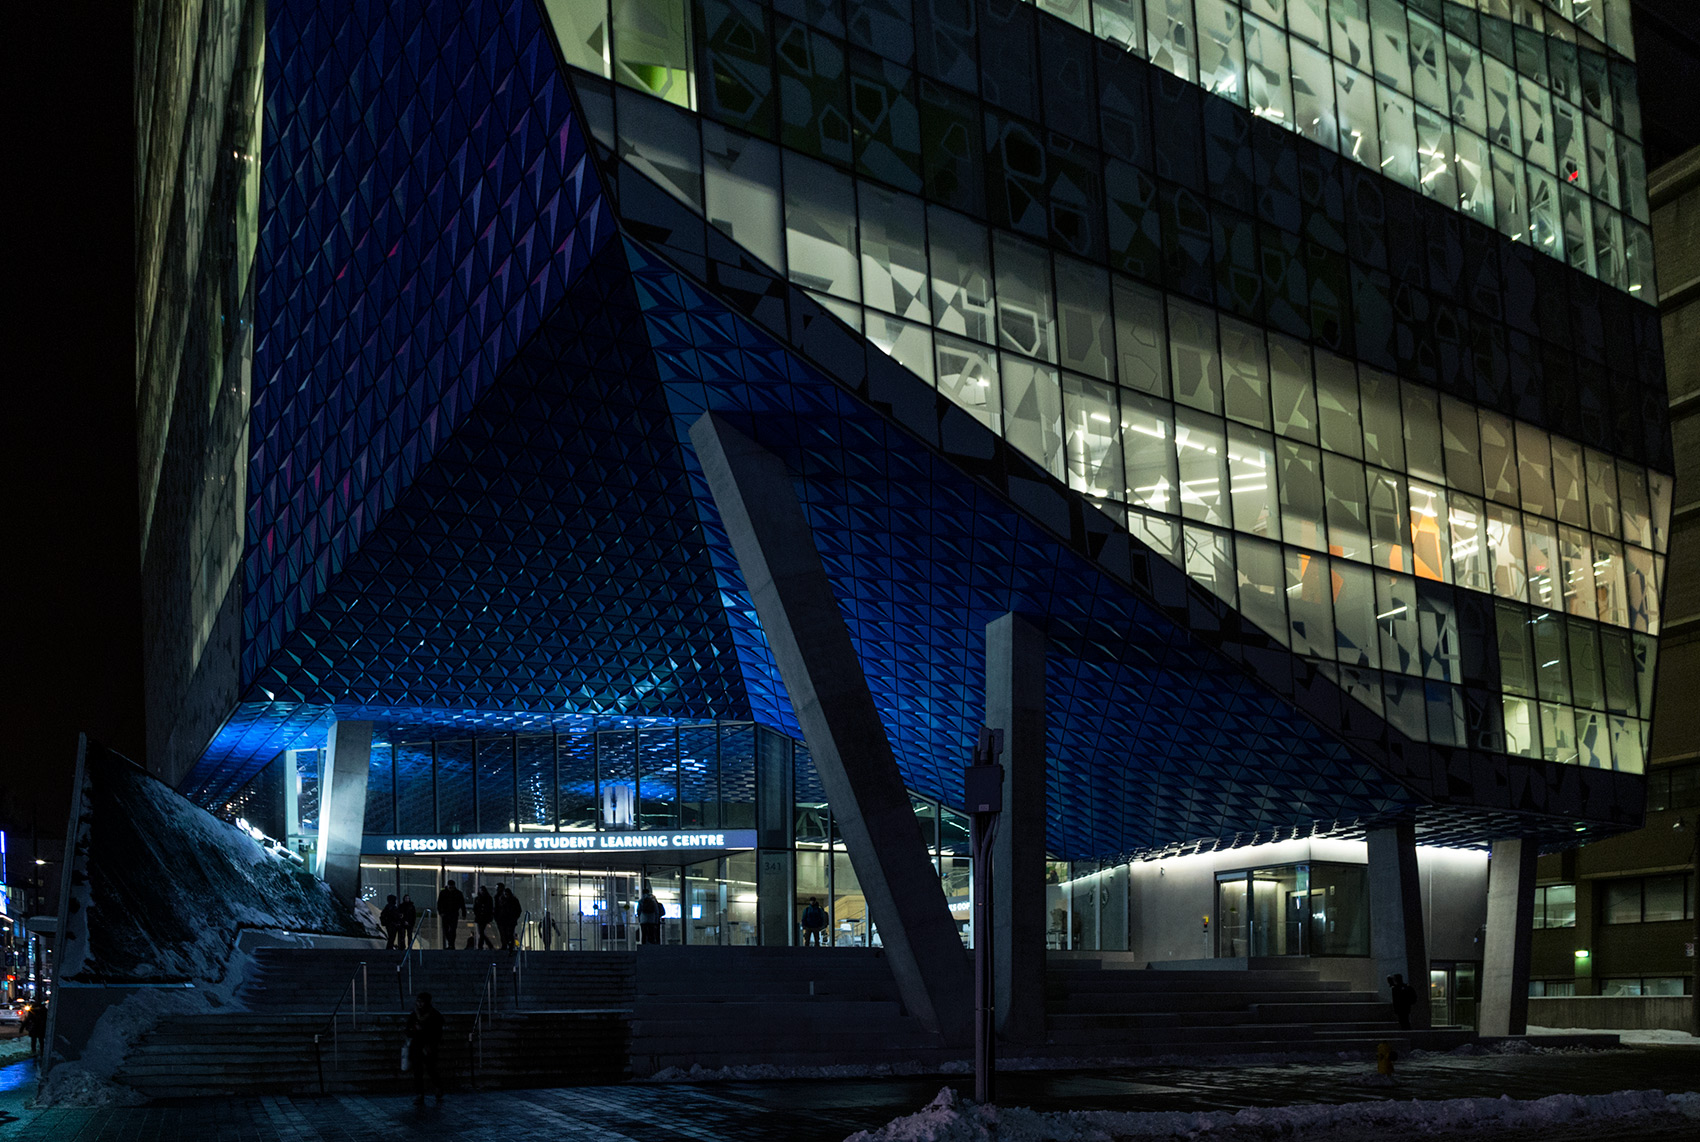 20150226. The Ryerson Student Learning Centre's dramatic entranc